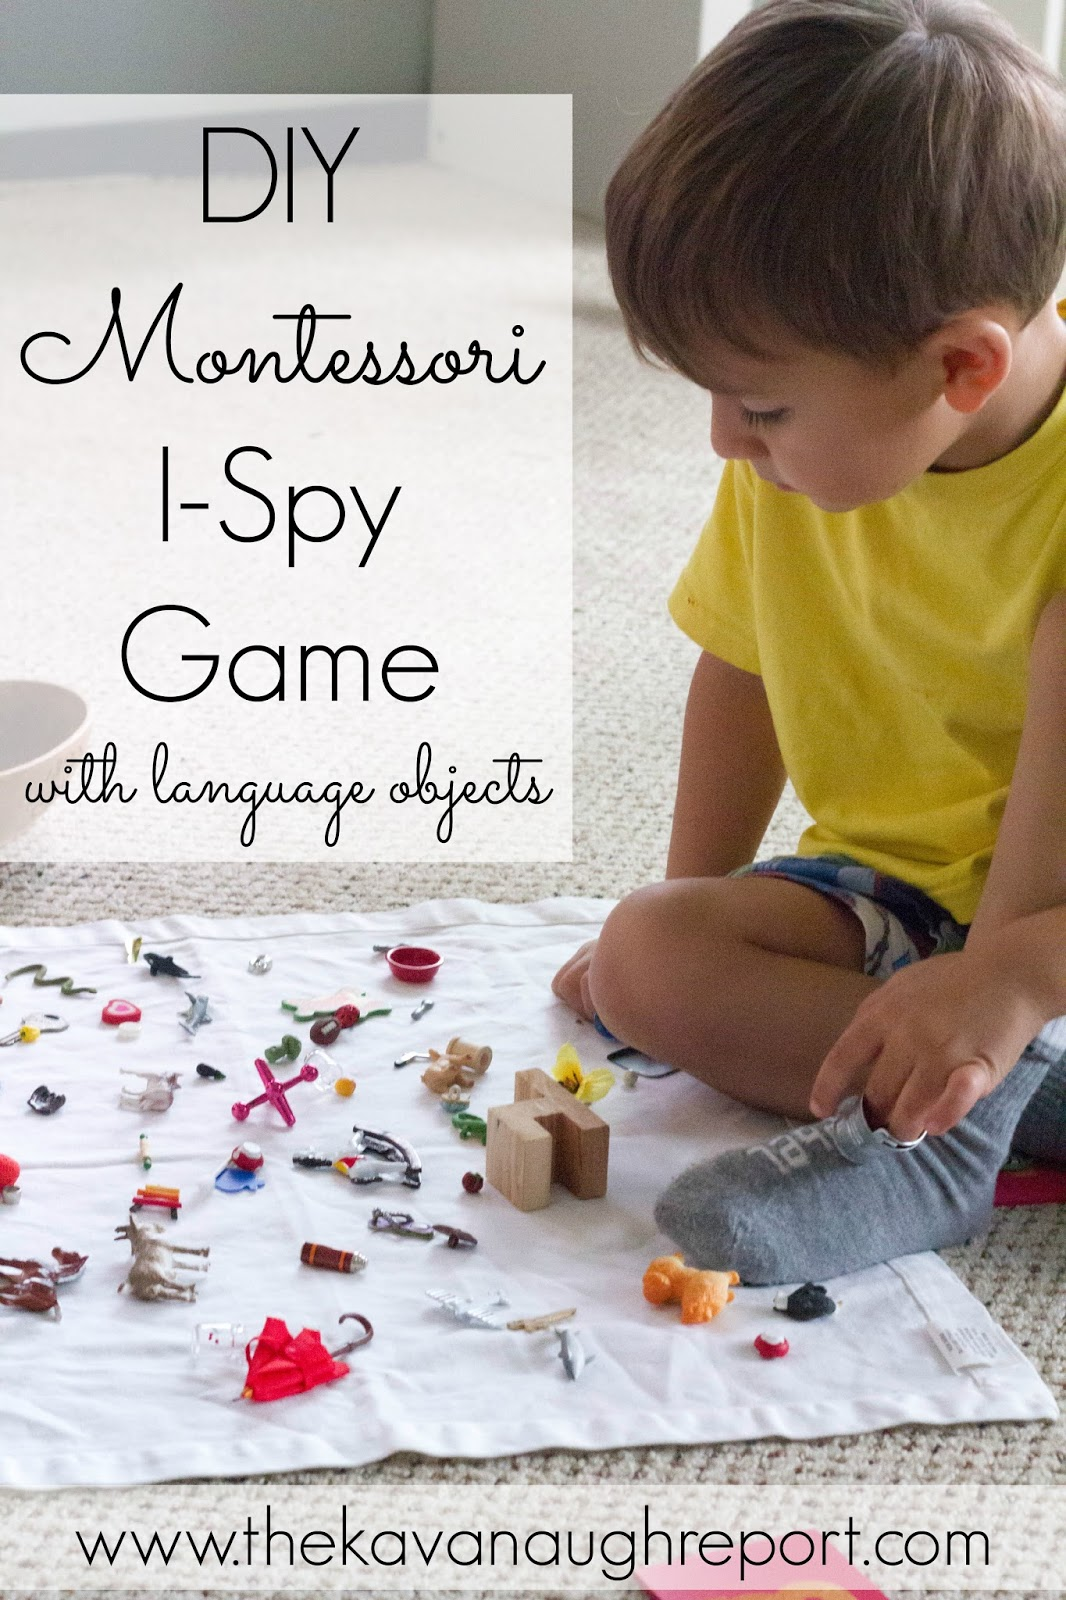 Diy Montessori I Spy Game